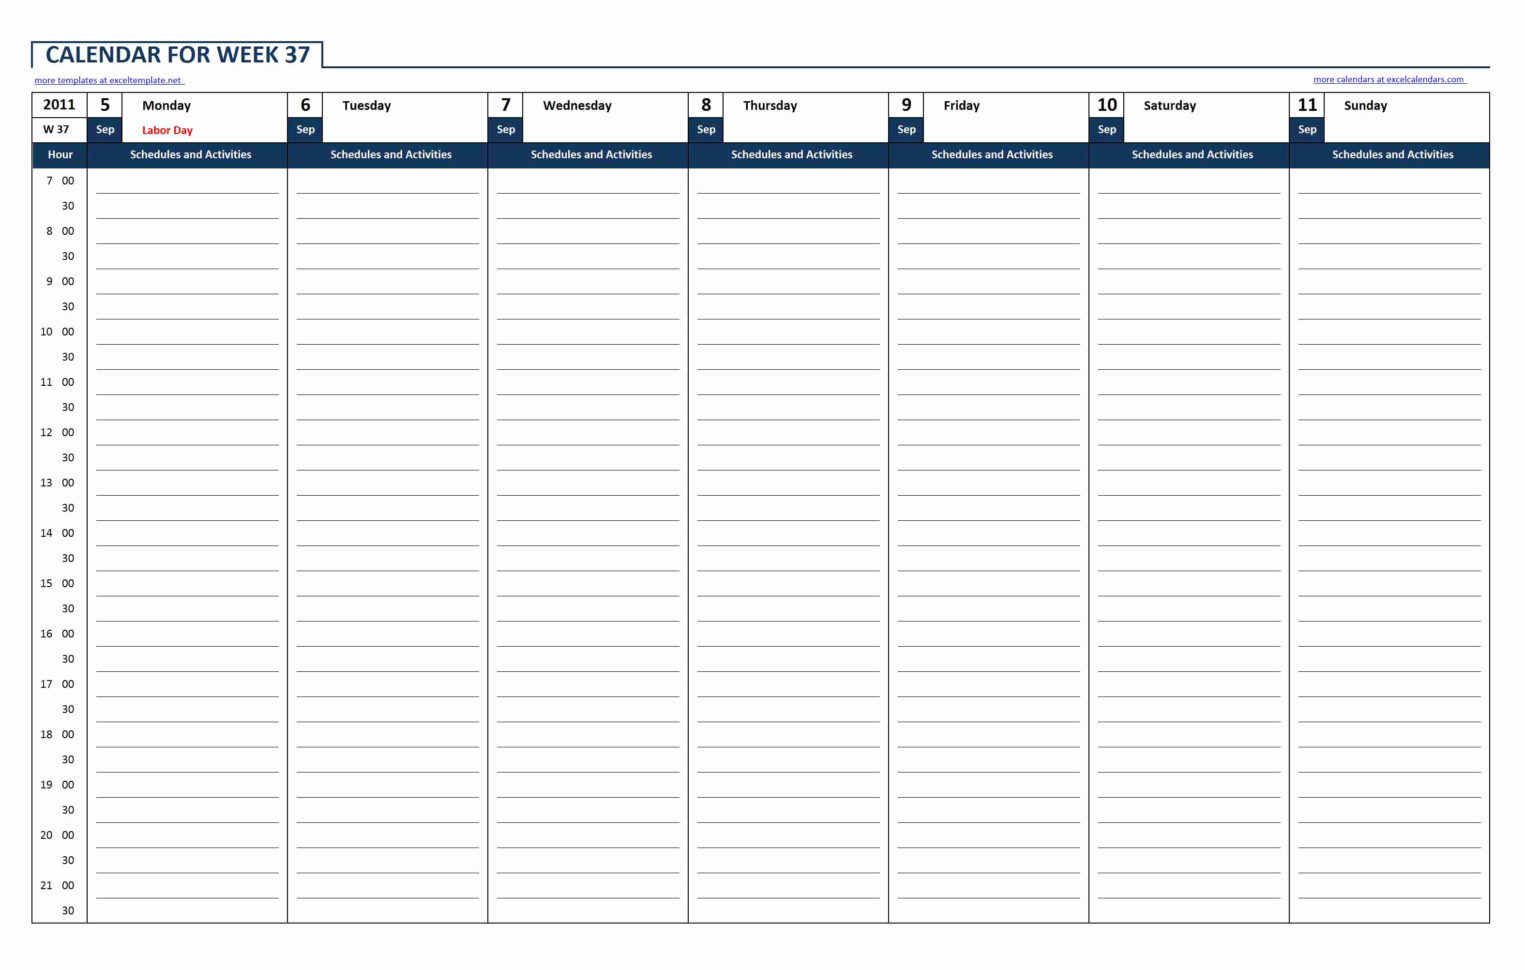 Excel Spreadsheet Calendar Template Weekly Calendar Spreadsheet Intended For Calendar Spreadsheet